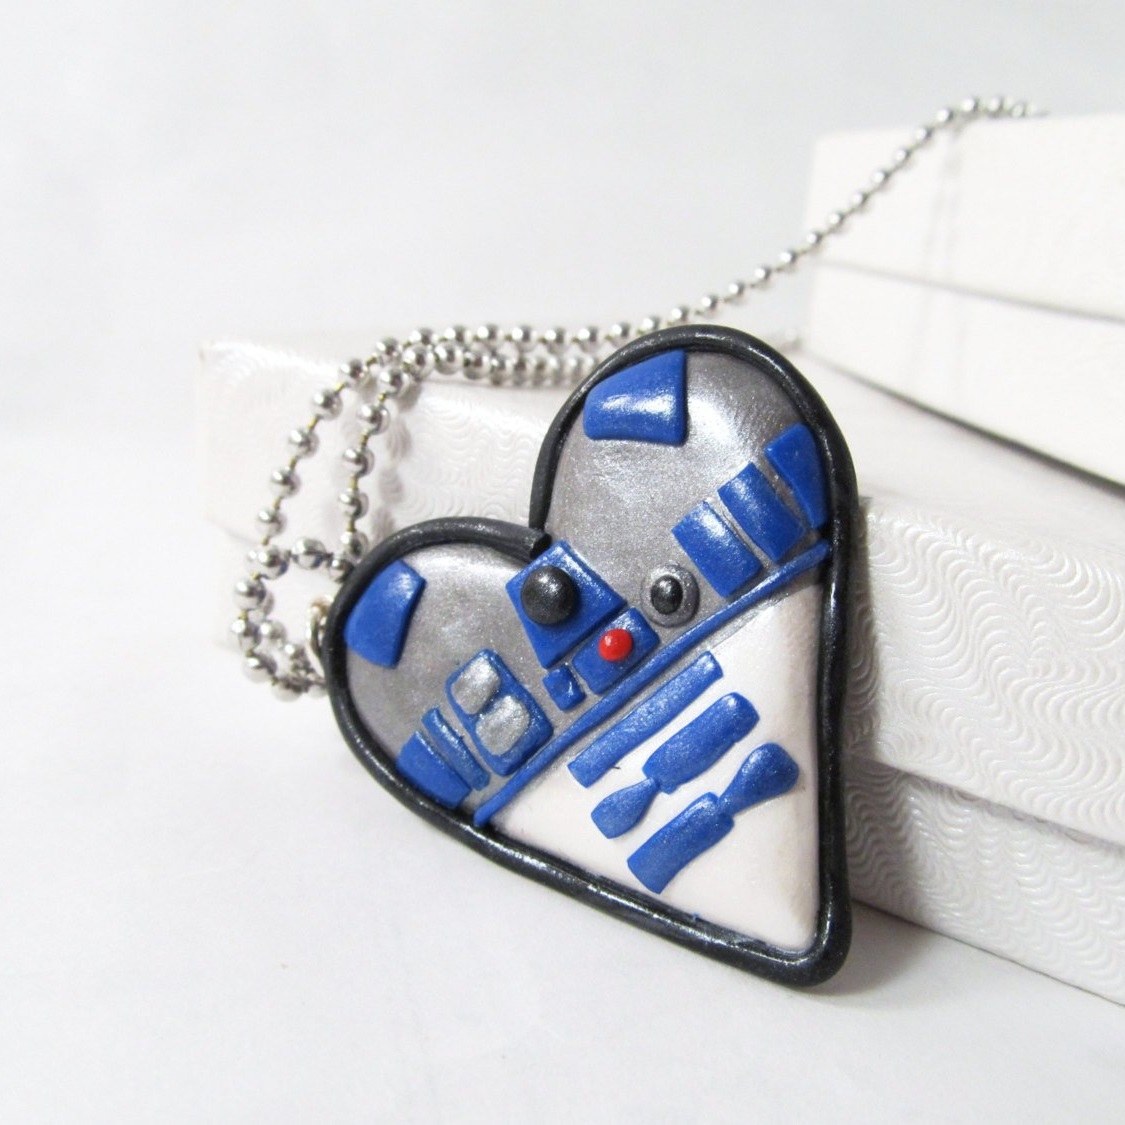 Star Wars Heart Shaped Necklace by Etsy Seller MissEsAccessories